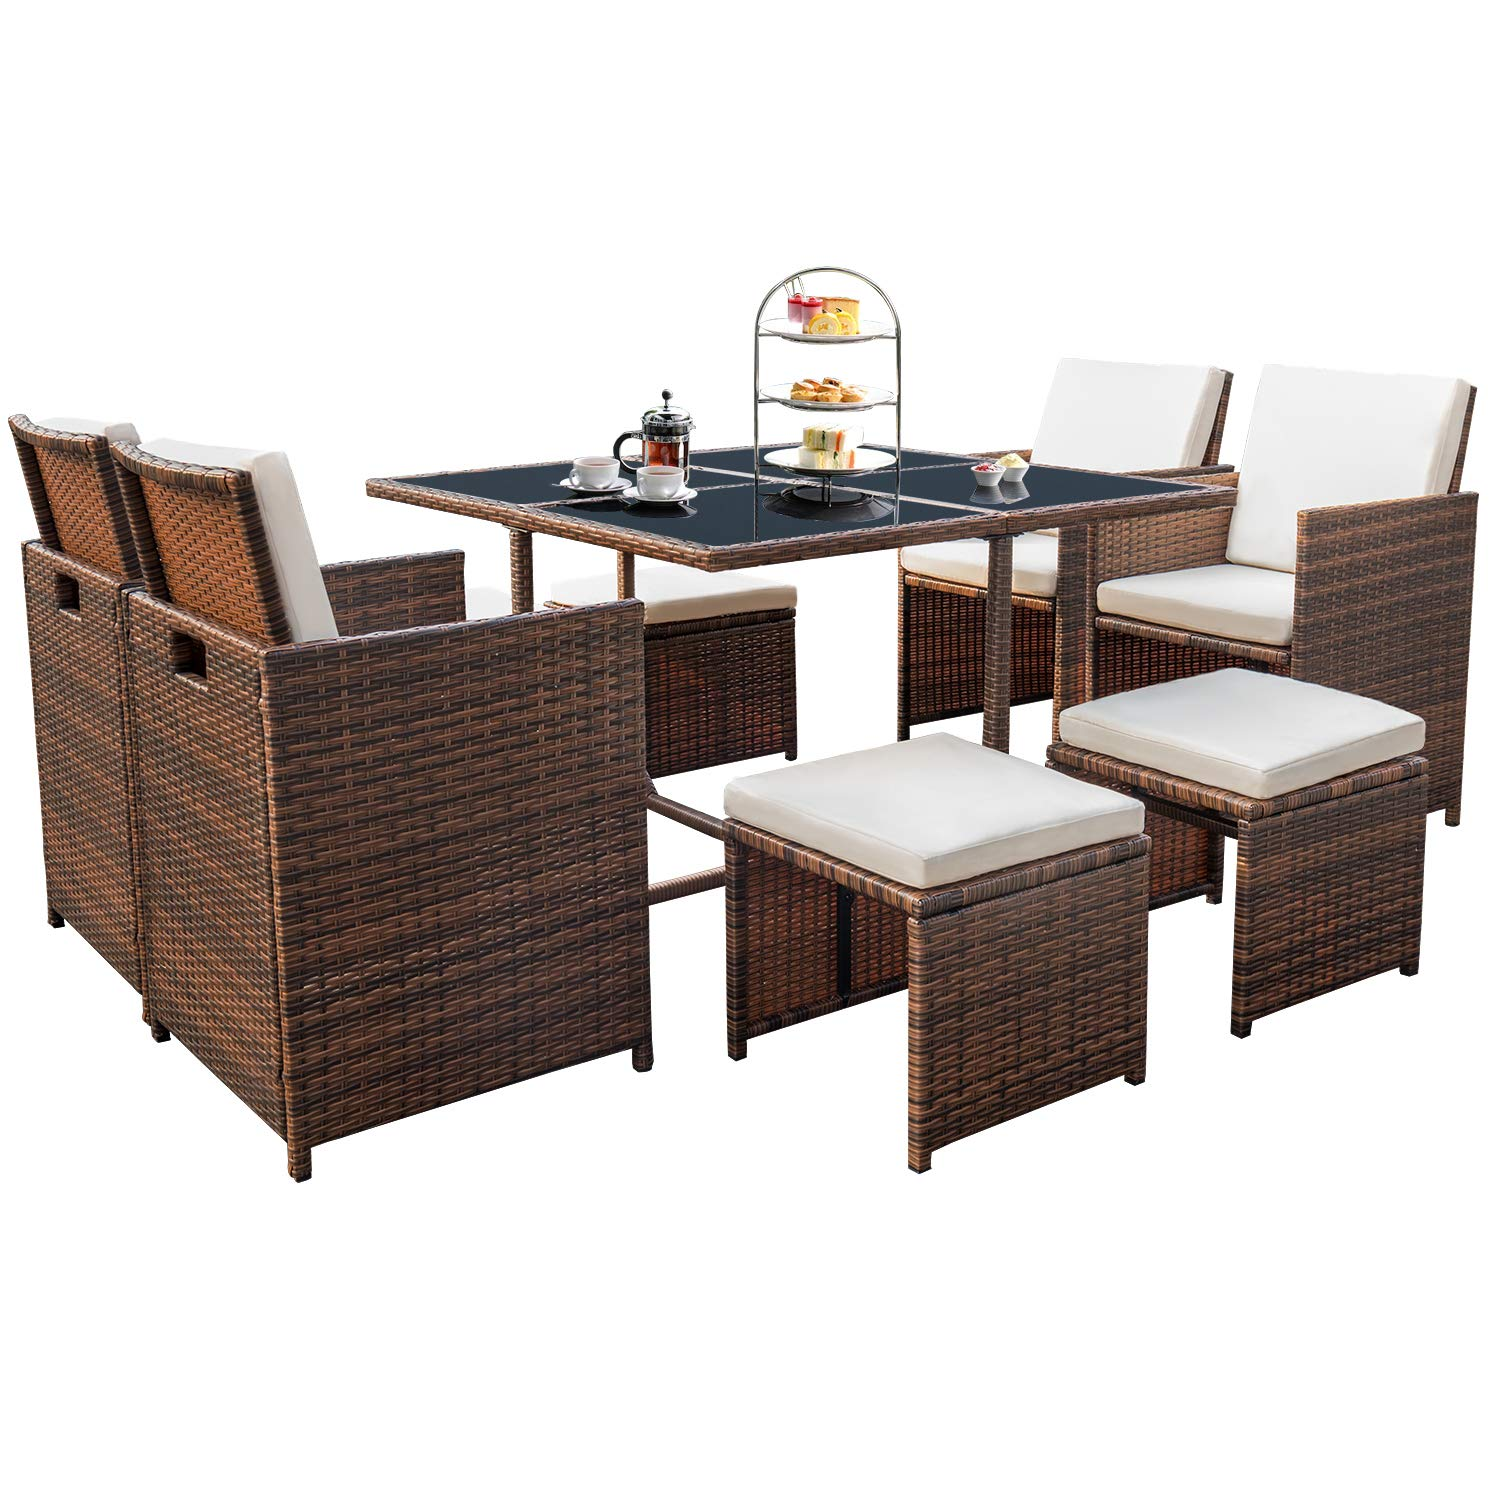 Devoko 9 Pieces Patio Dining Sets Outdoor Space Saving Rattan Chairs with Glass Table Patio Furniture Sets Cushioned Seating and Back Sectional Conversation Set (Brown) by Devoko (Image #1)